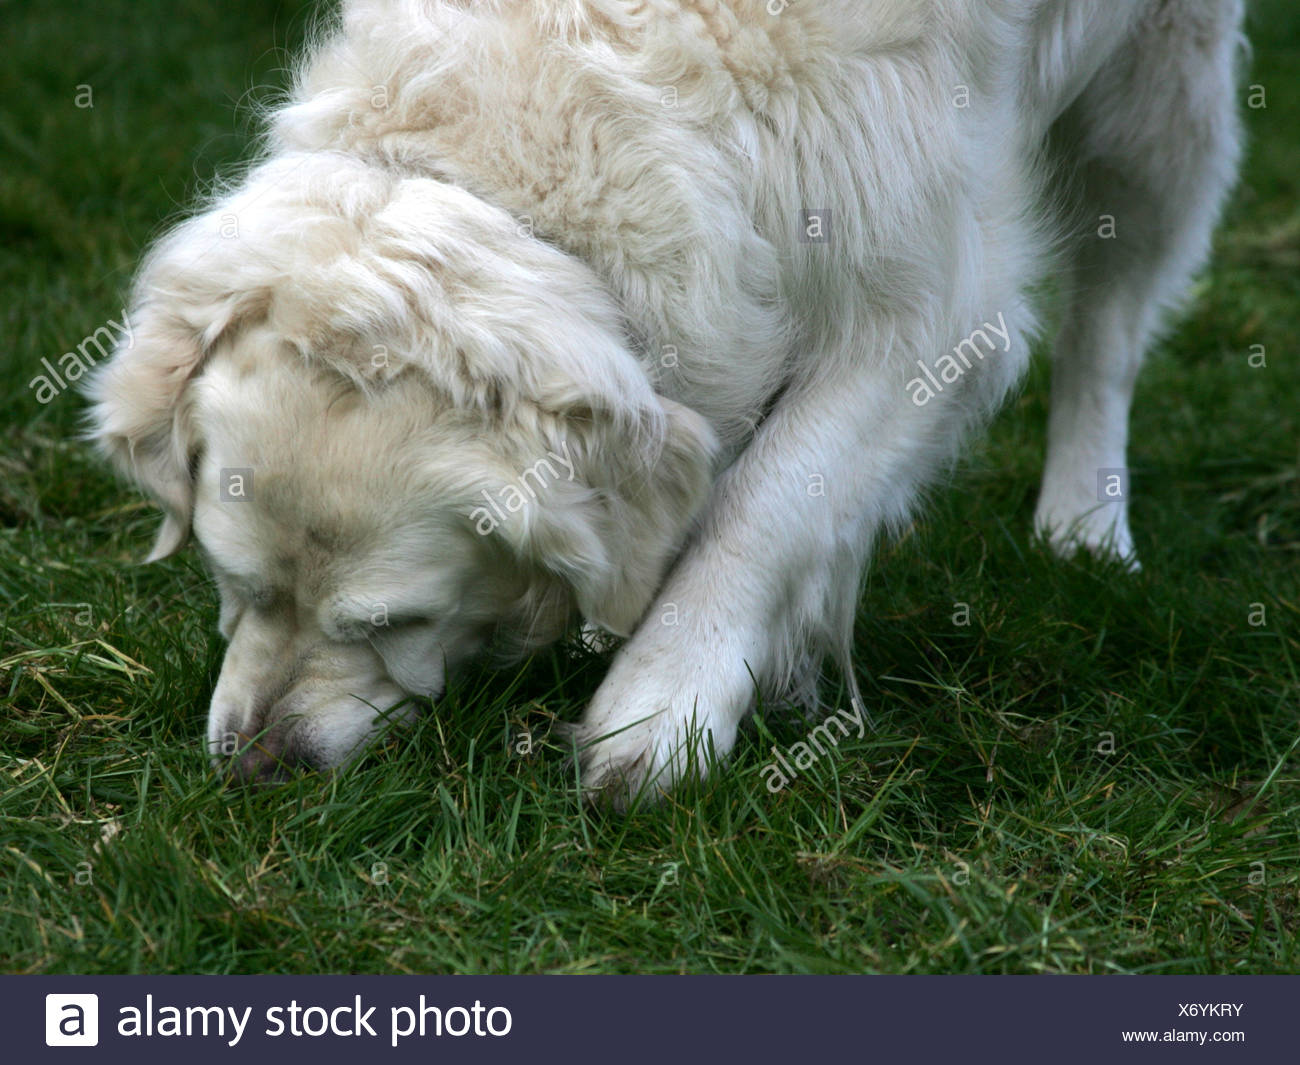 A golden retriever chewing the grass at home. - Stock Image